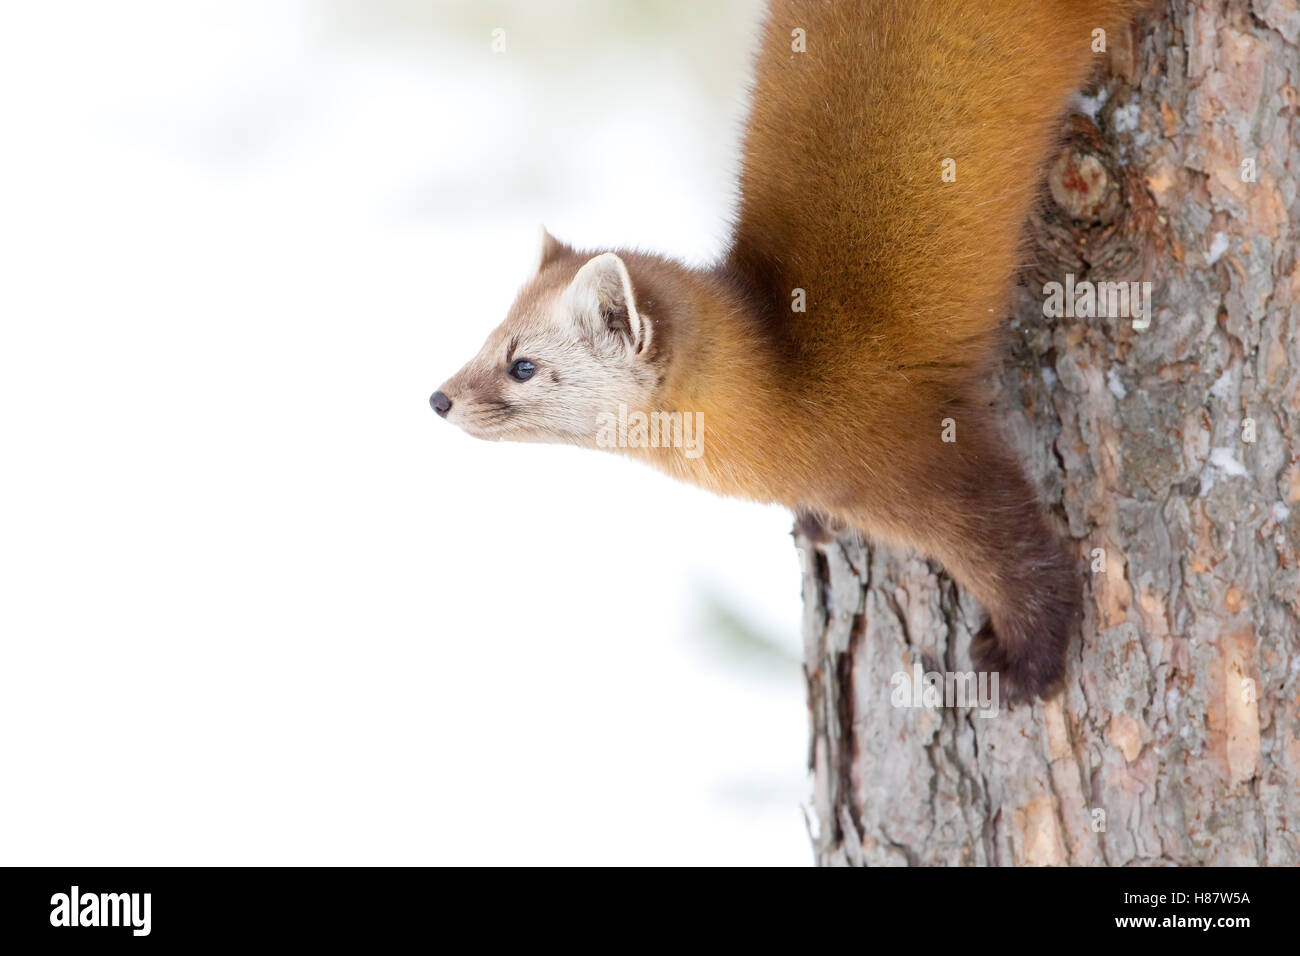 Pine marten climbing down tree in Algonquin Park in winter in Canada - Stock Image